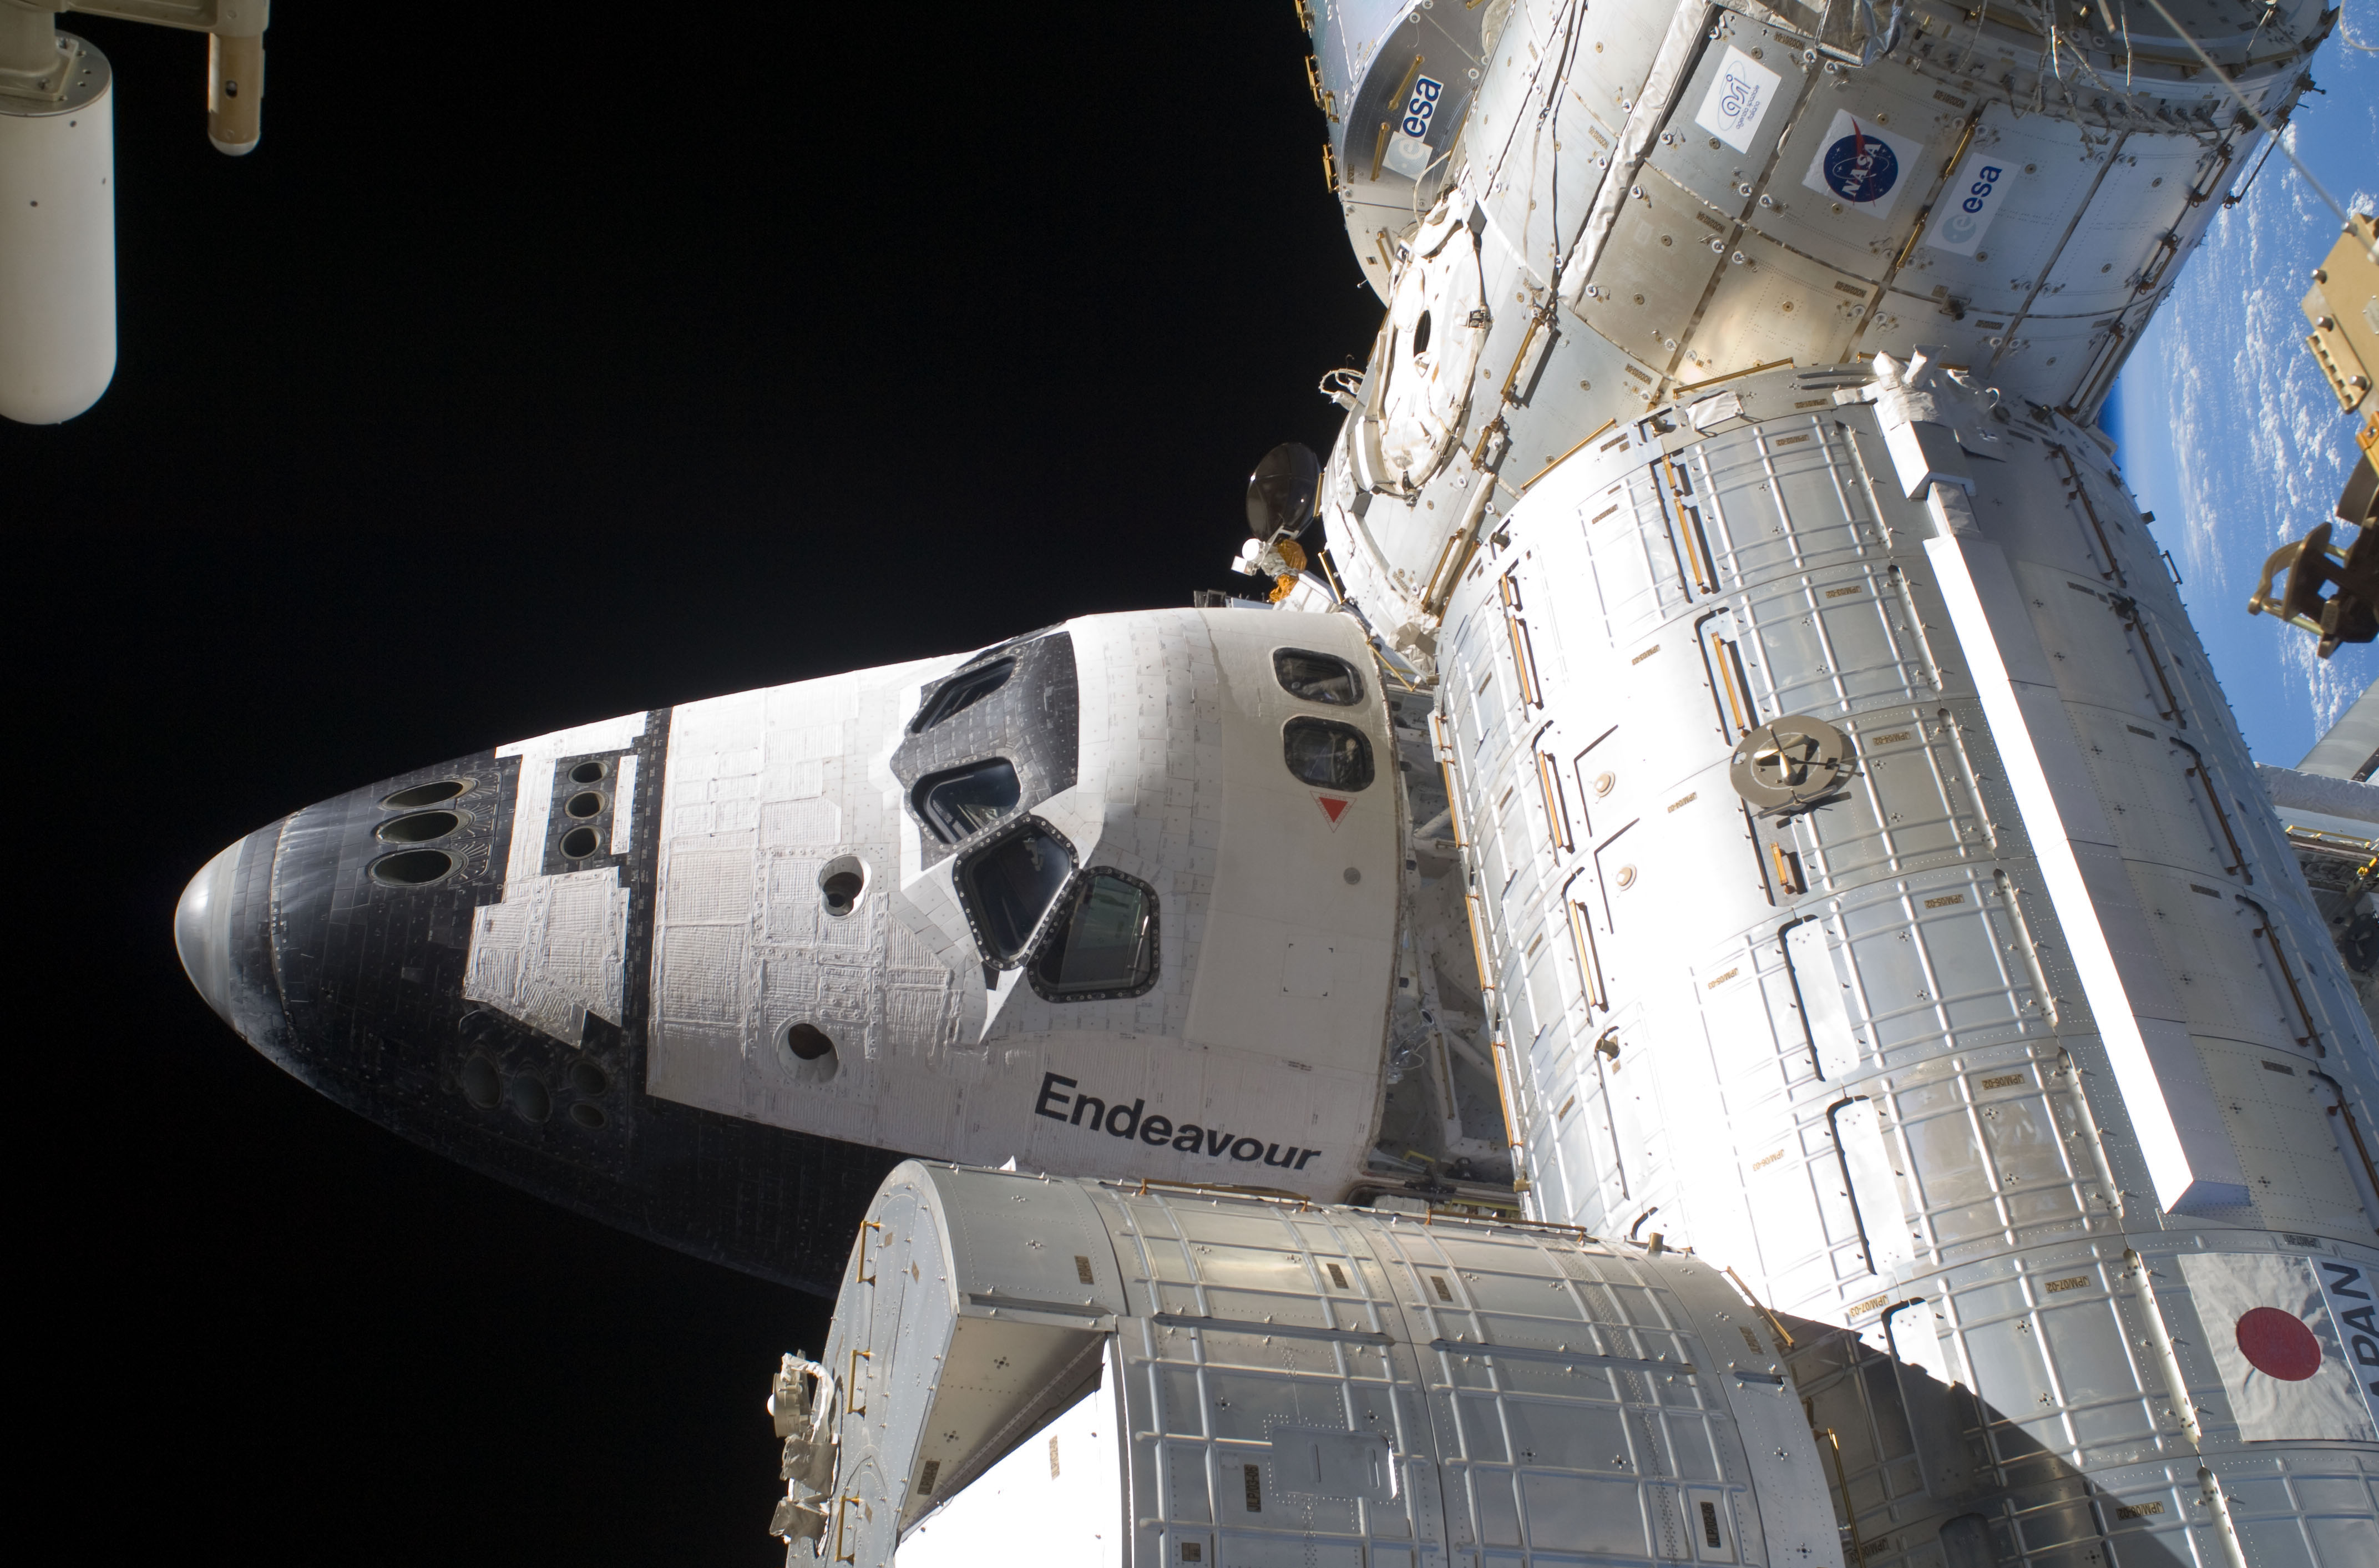 Endeavour_STS127_ISS.jpg